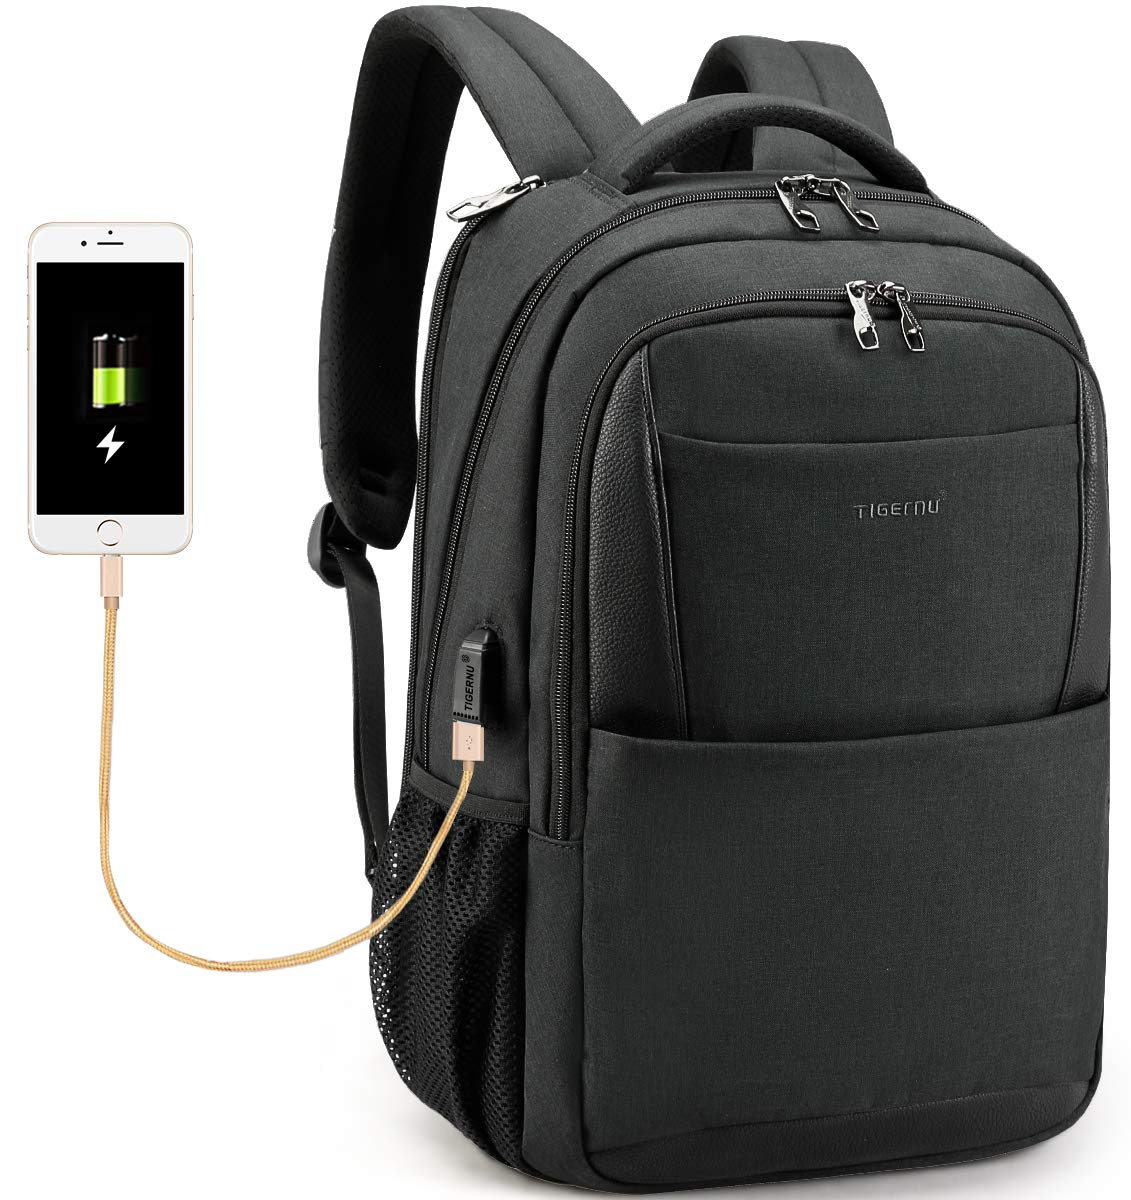 f6882ae1e365 TIGERNU Anti Theft Laptop Backpack with USB Charging Port Computer Men  Backpack Bag Fit Laptops up to 15.6 Unisex Waterproof Oxford (Black)   Amazon.ca  ...